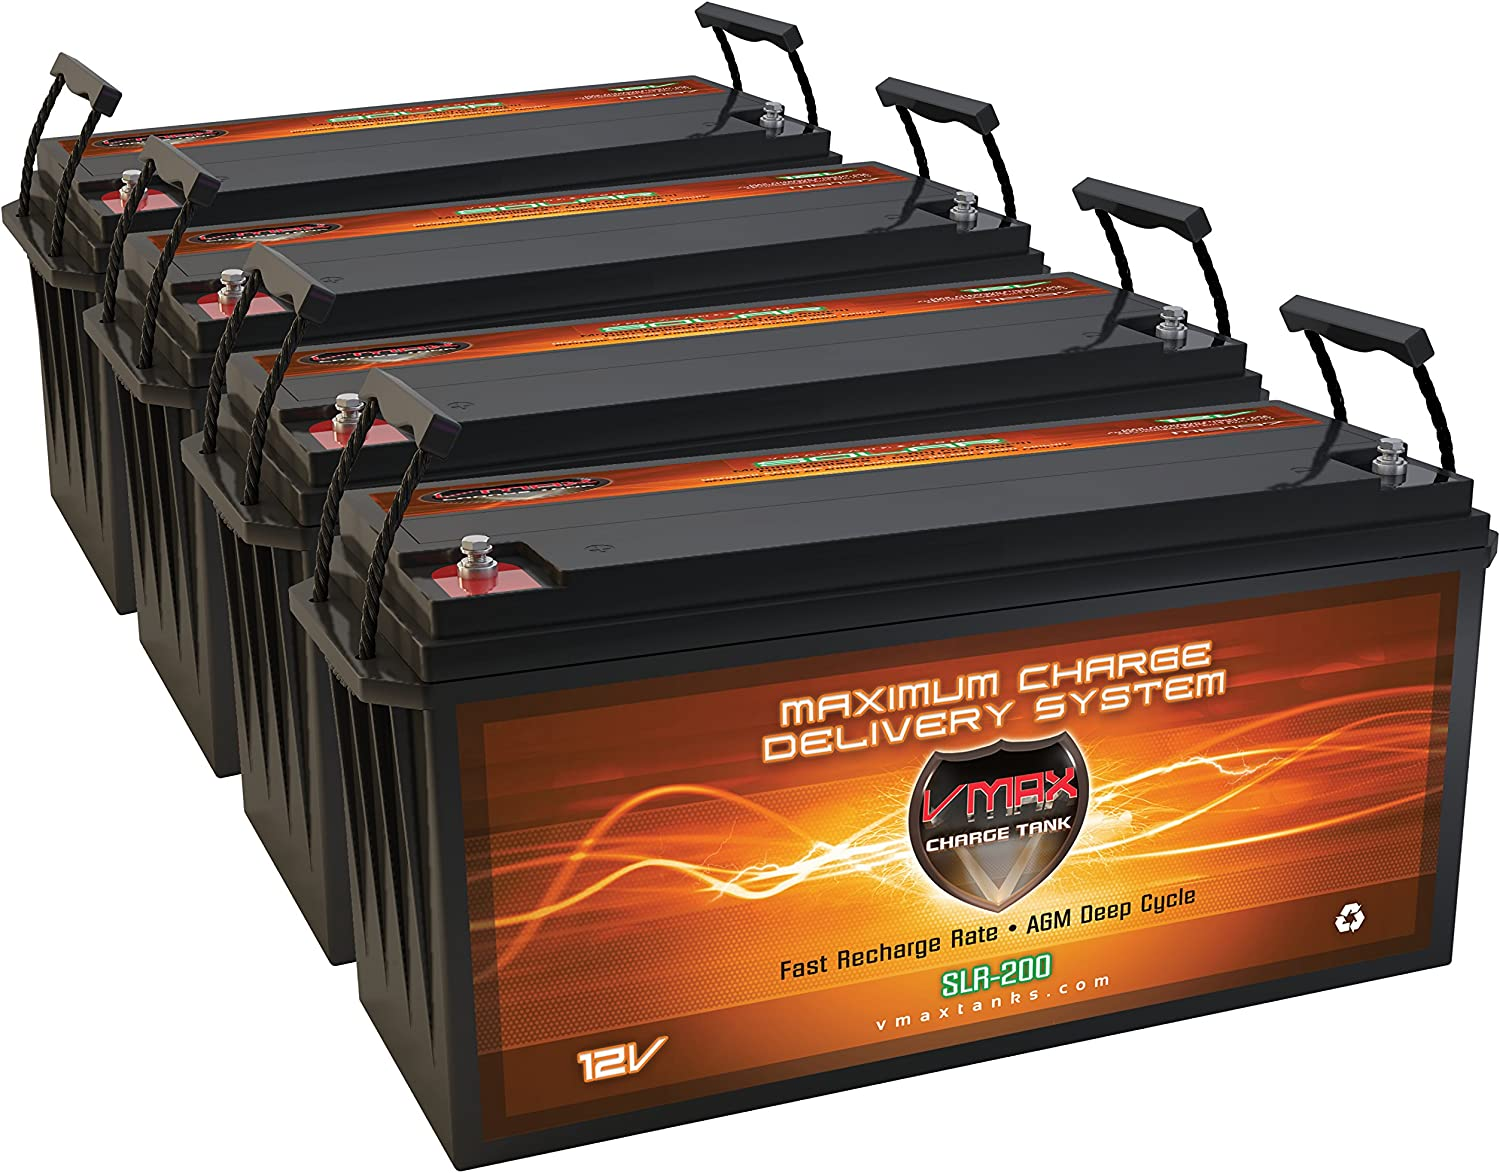 QTY 4 Vmaxtanks Vmax SLR200 12 Volt 200Ah AGM Battery Solar Batteries for Use with PV Solar Panels Wind Turbine Electric power backup generator for Off Grid or Grid Tie